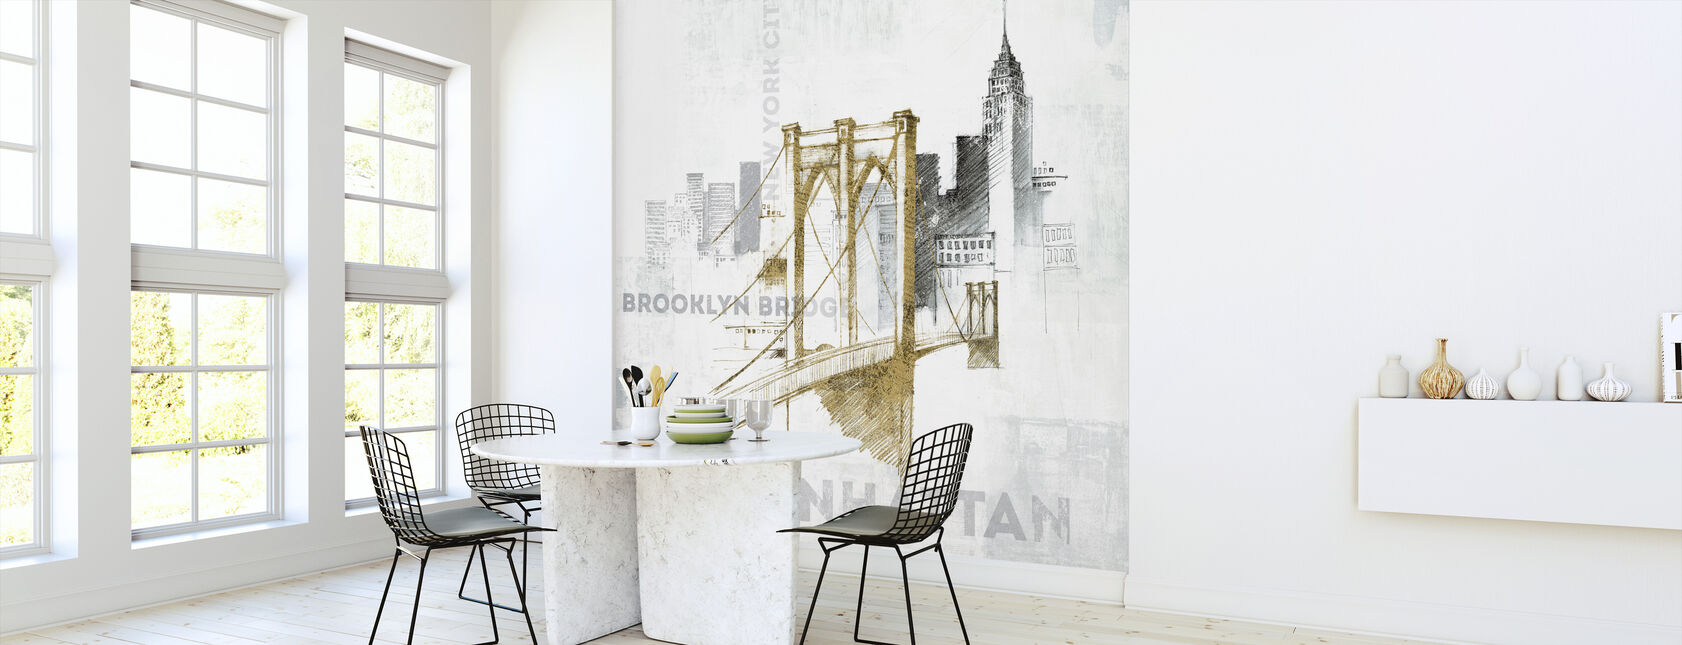 Brooklyn Bridge - Wallpaper - Kitchen